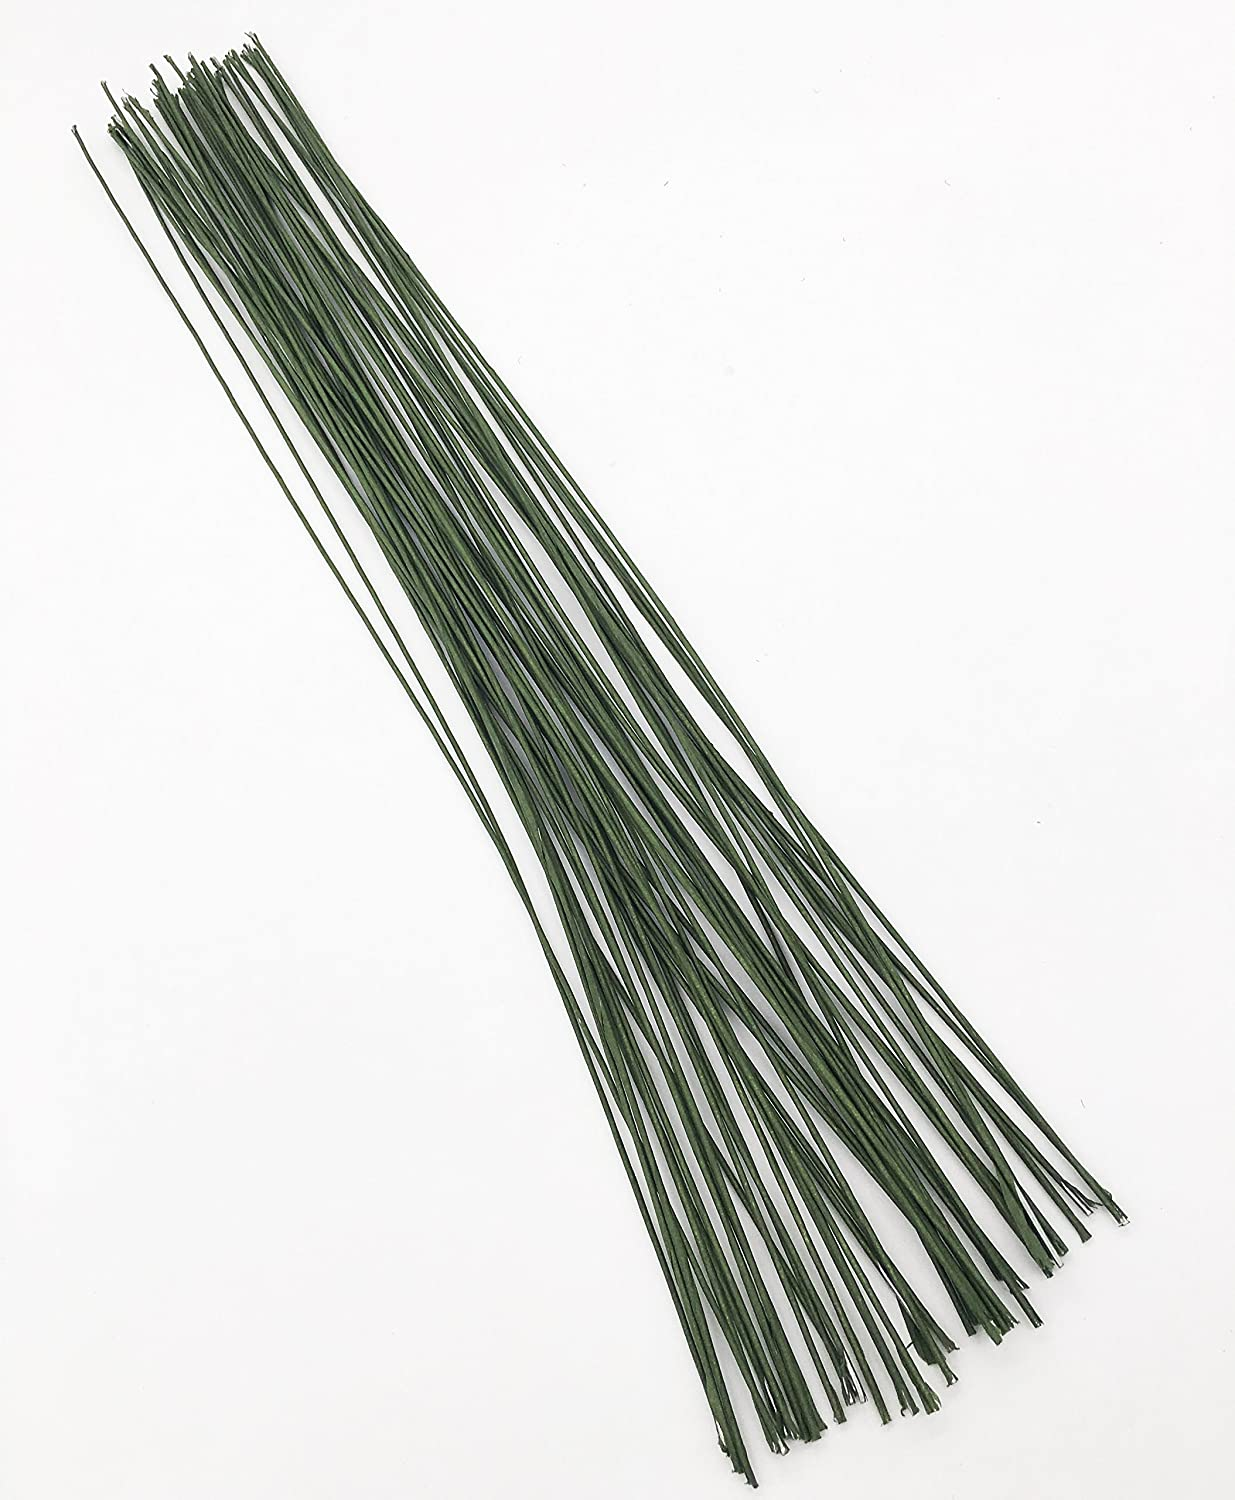 Gum Paste Floral Wire 26 Gauge Green Floral Wire for Flower Wrap11 inch, 40/Package KOOTIPS Kootips-1-4176